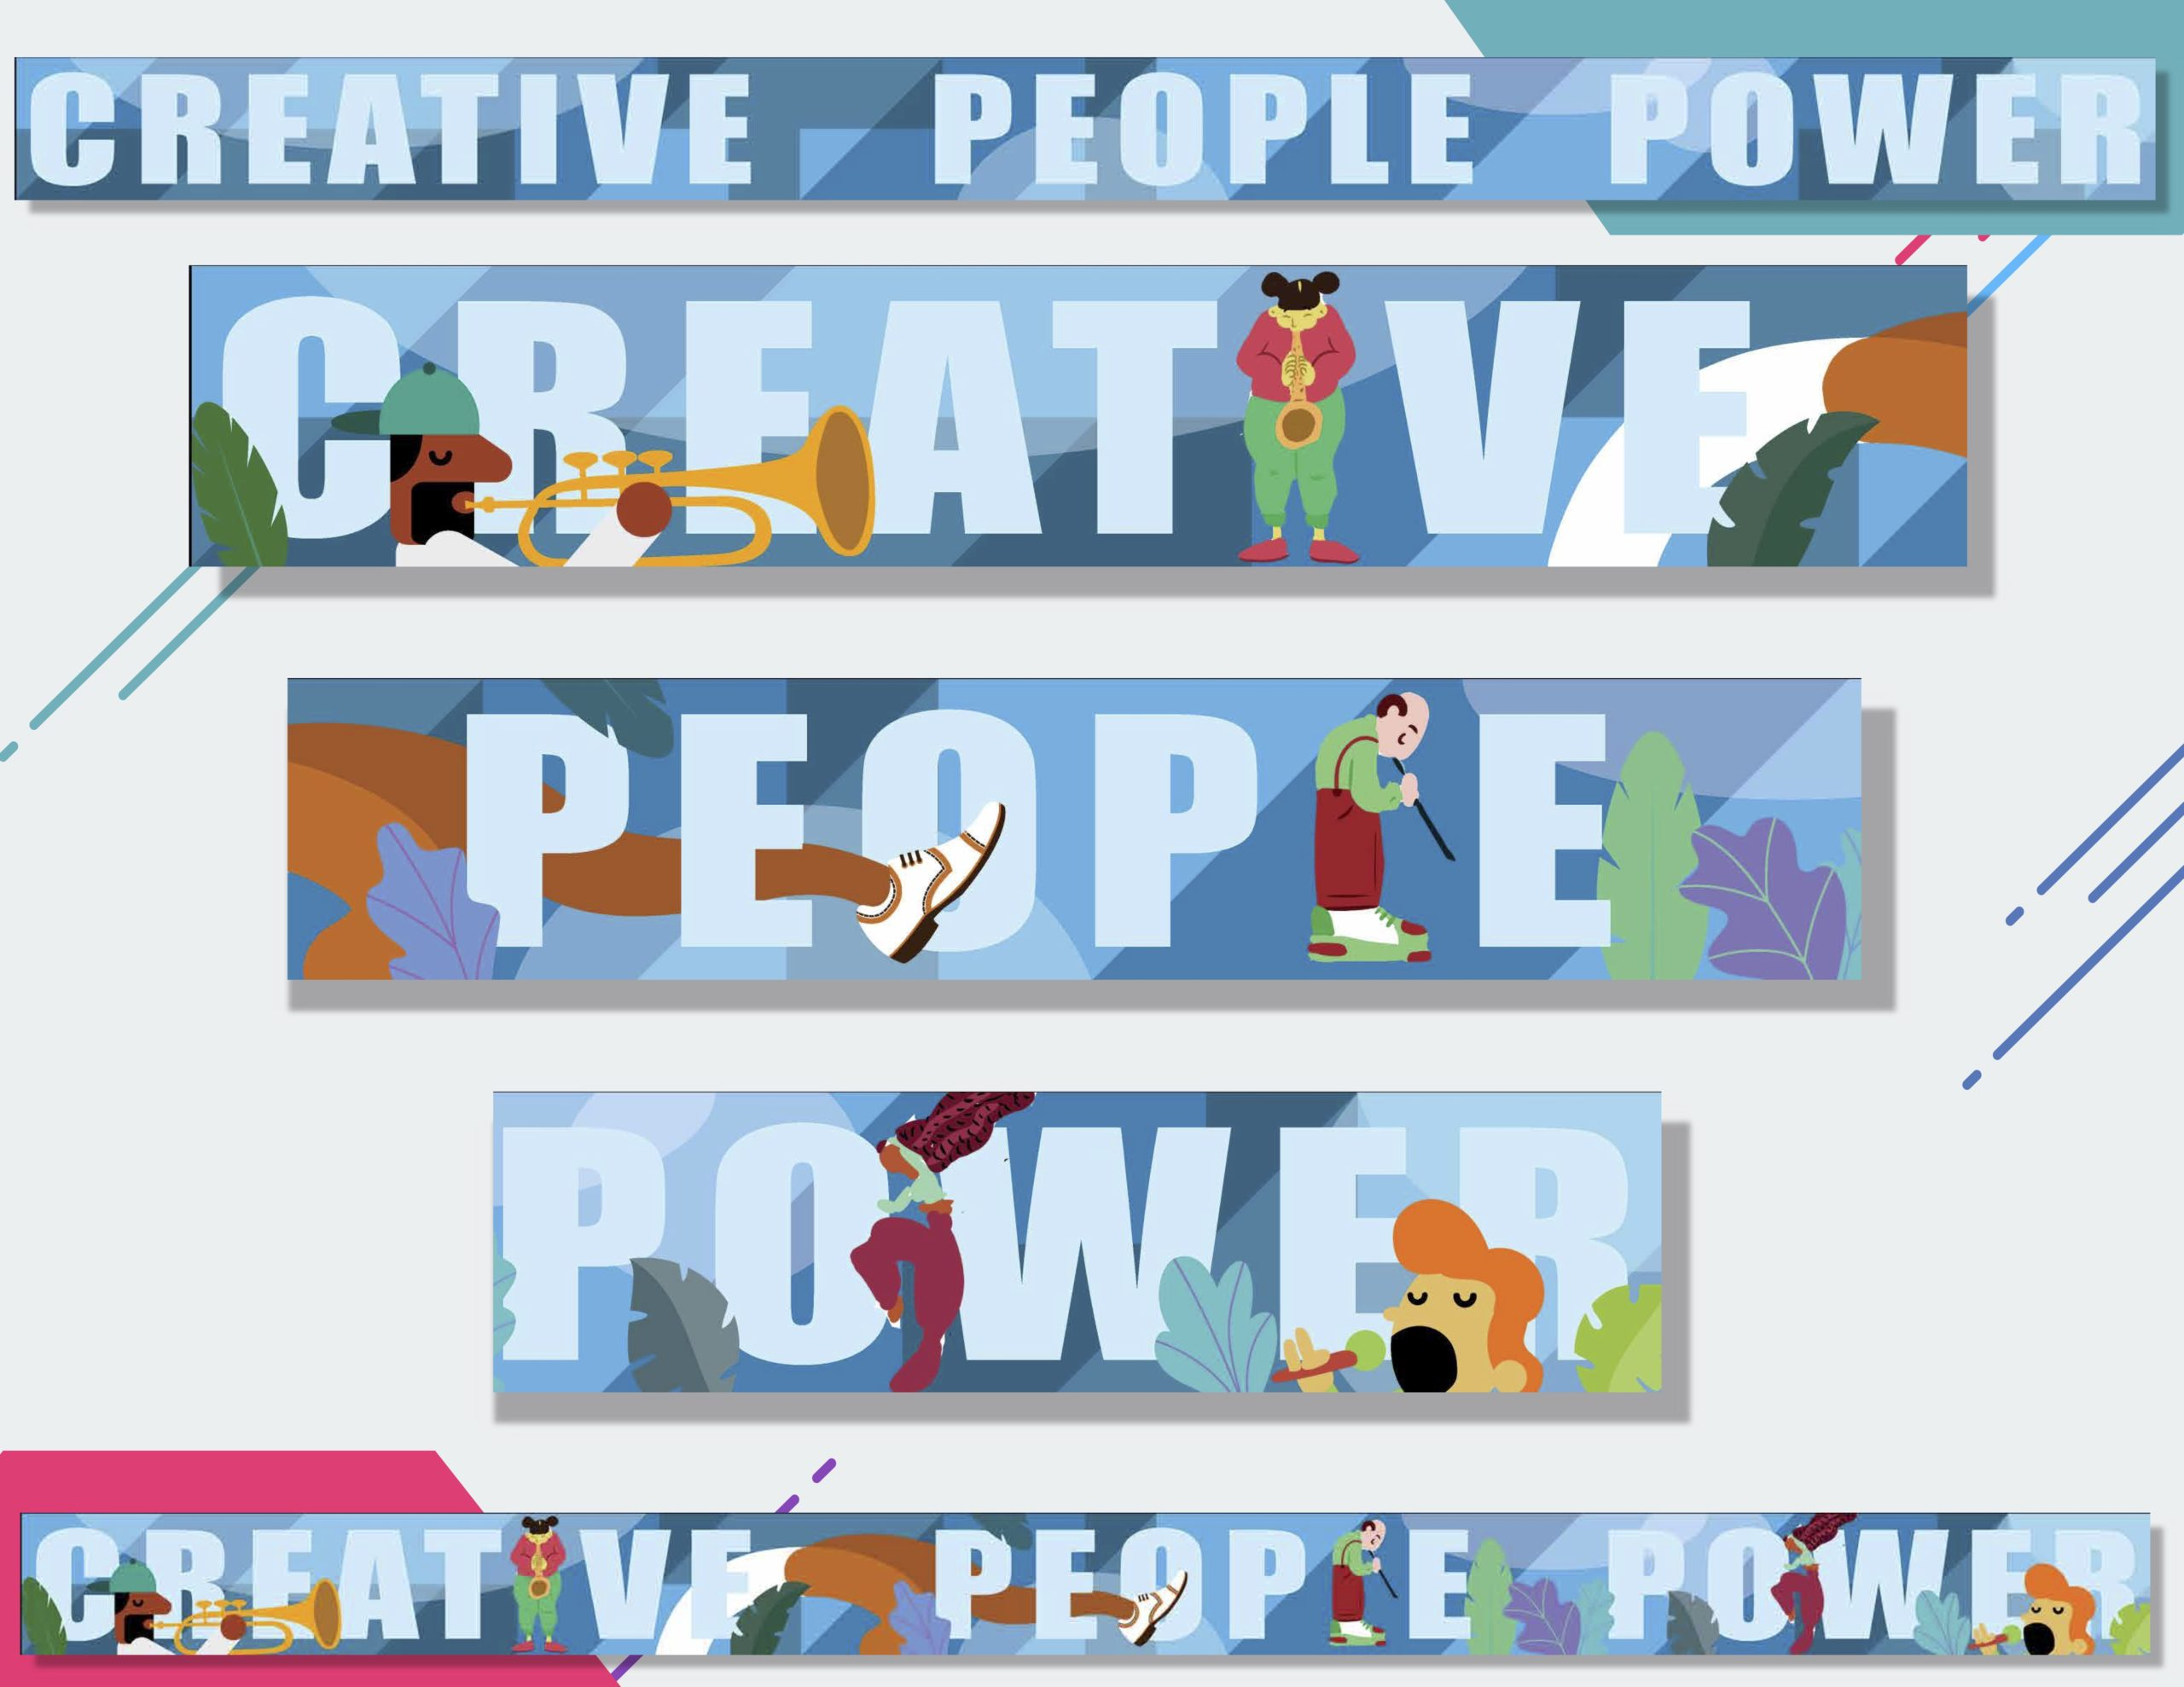 Creative People Power Mural